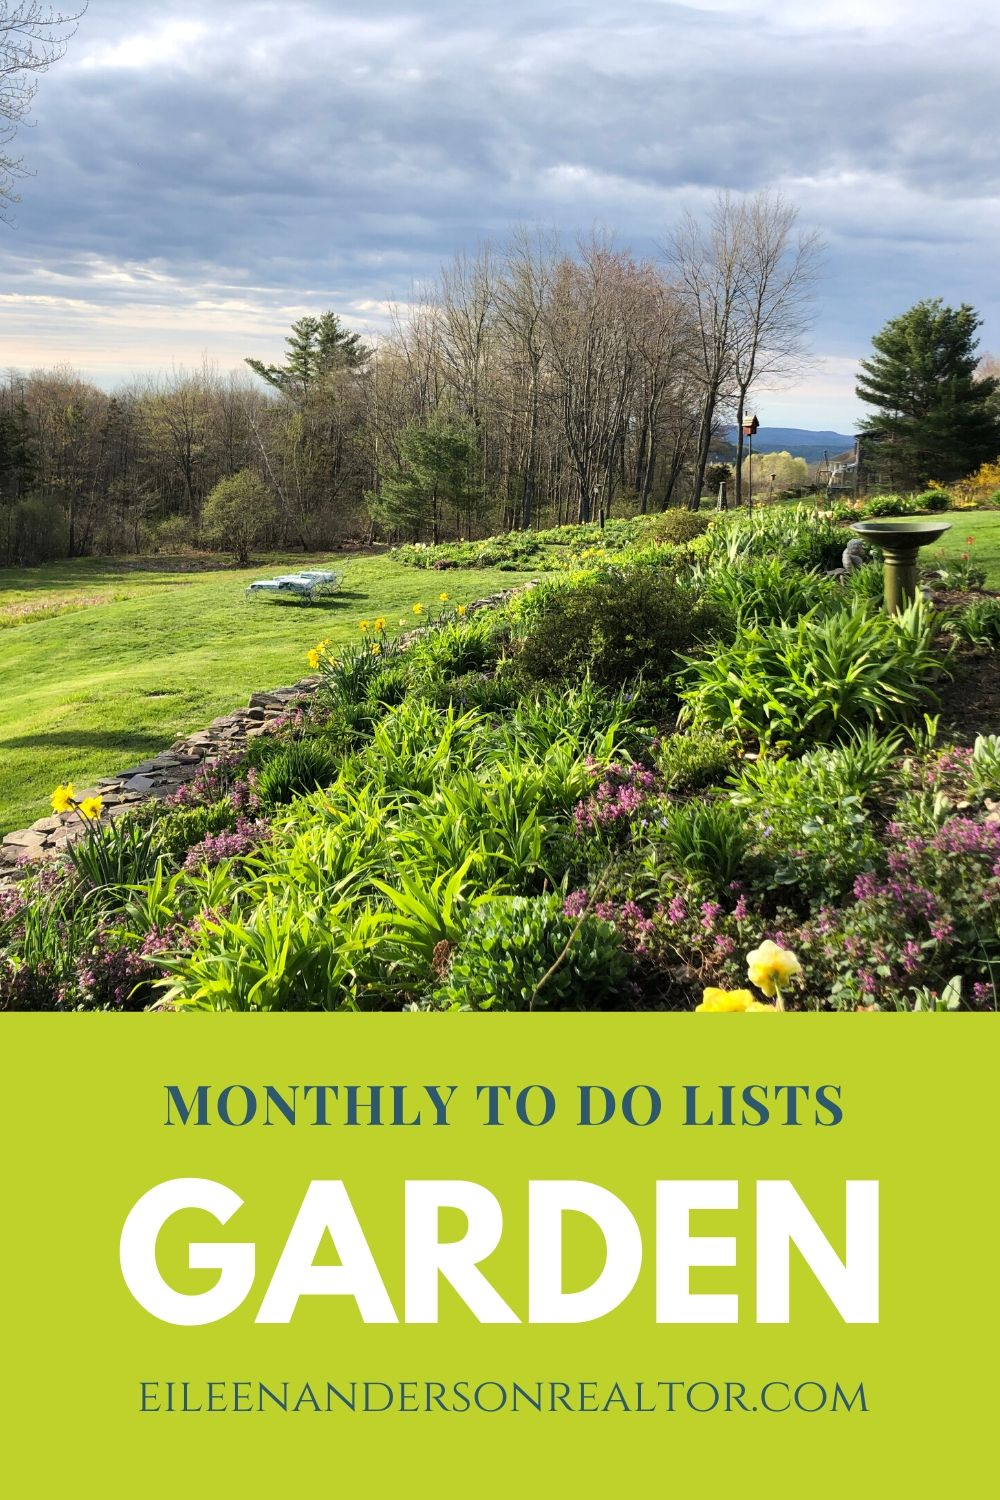 Monthy Gardening Ideas and to-do checklists